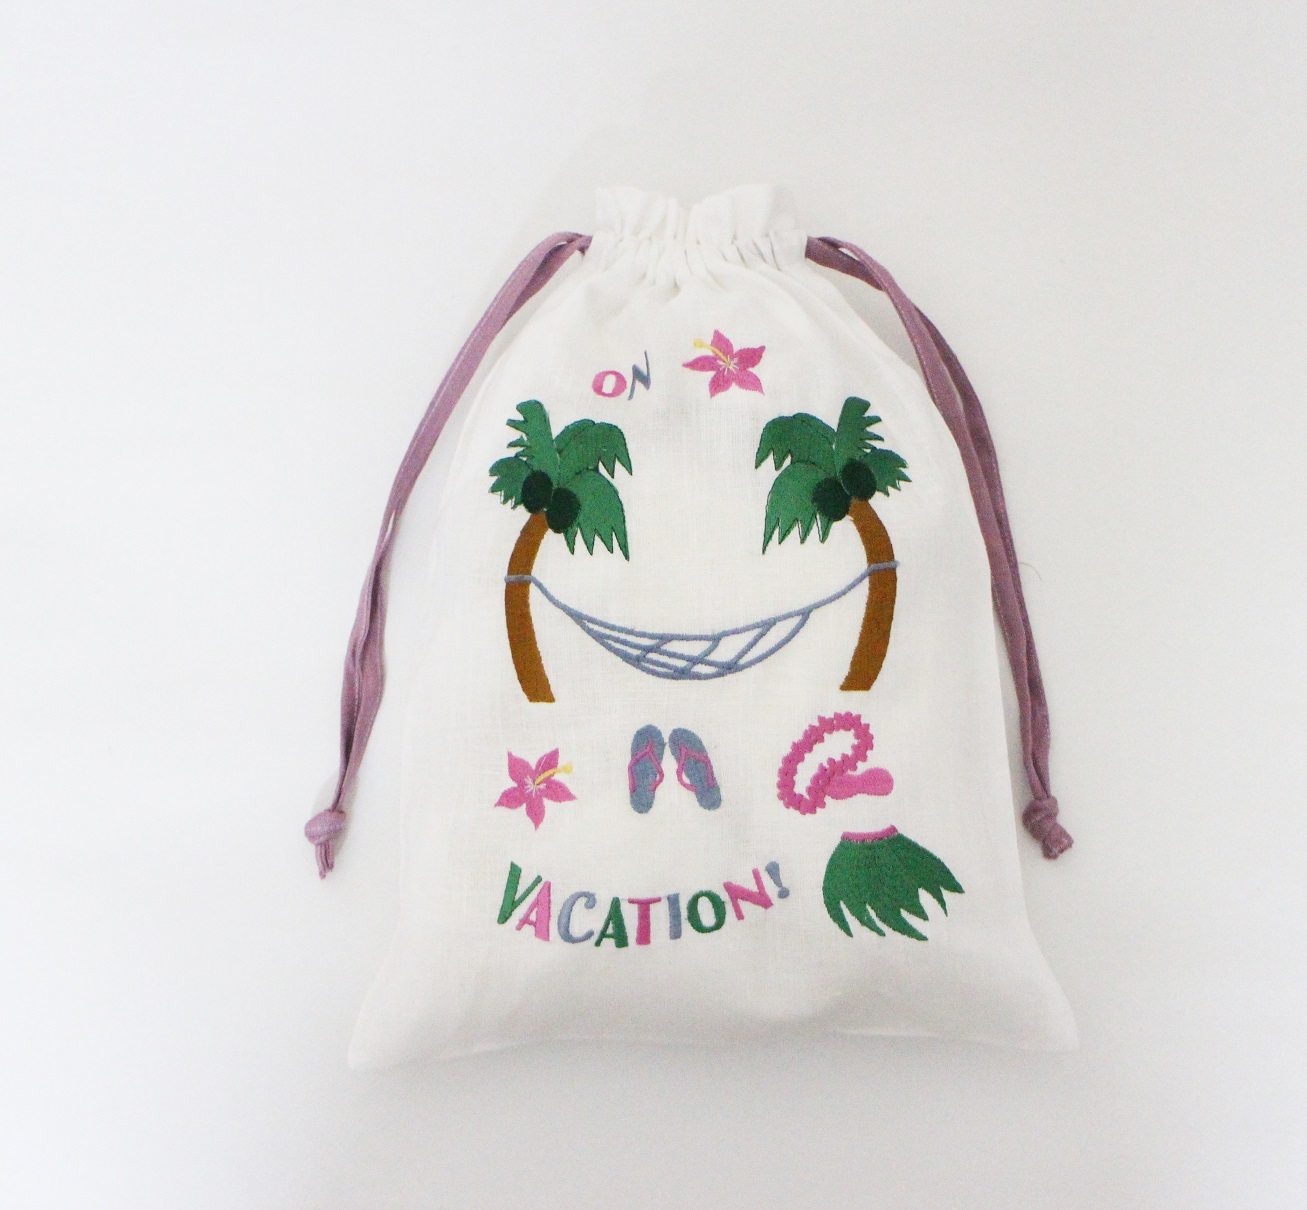 On vacation linen lingerie bag